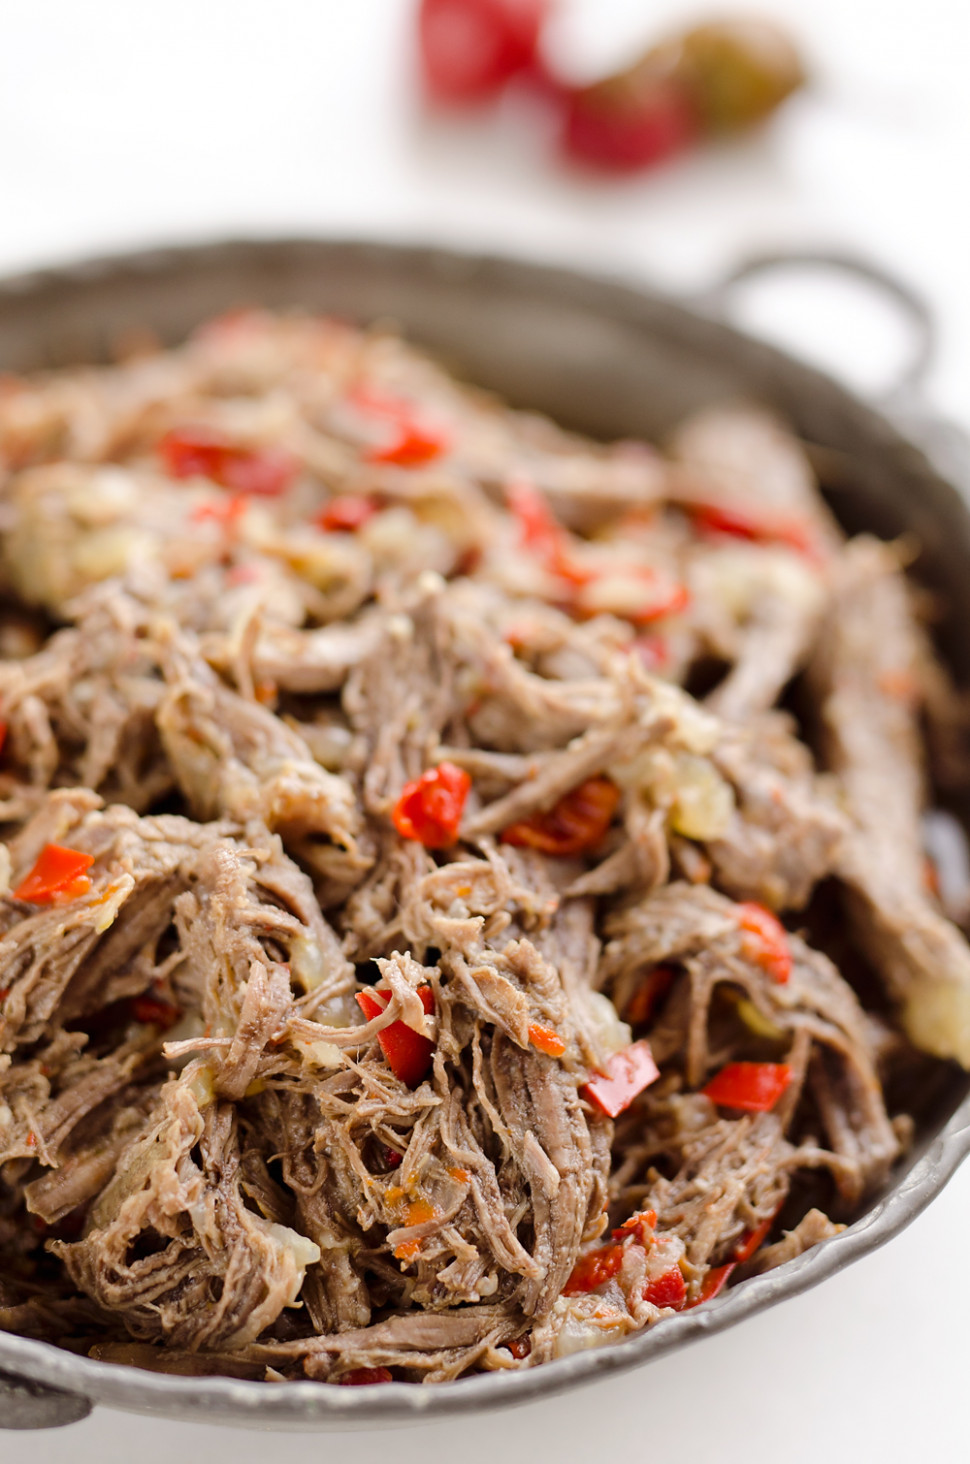 Pressure Cooker Shredded Italian Beef - Instant Pot Meal - healthy recipes in pressure cooker